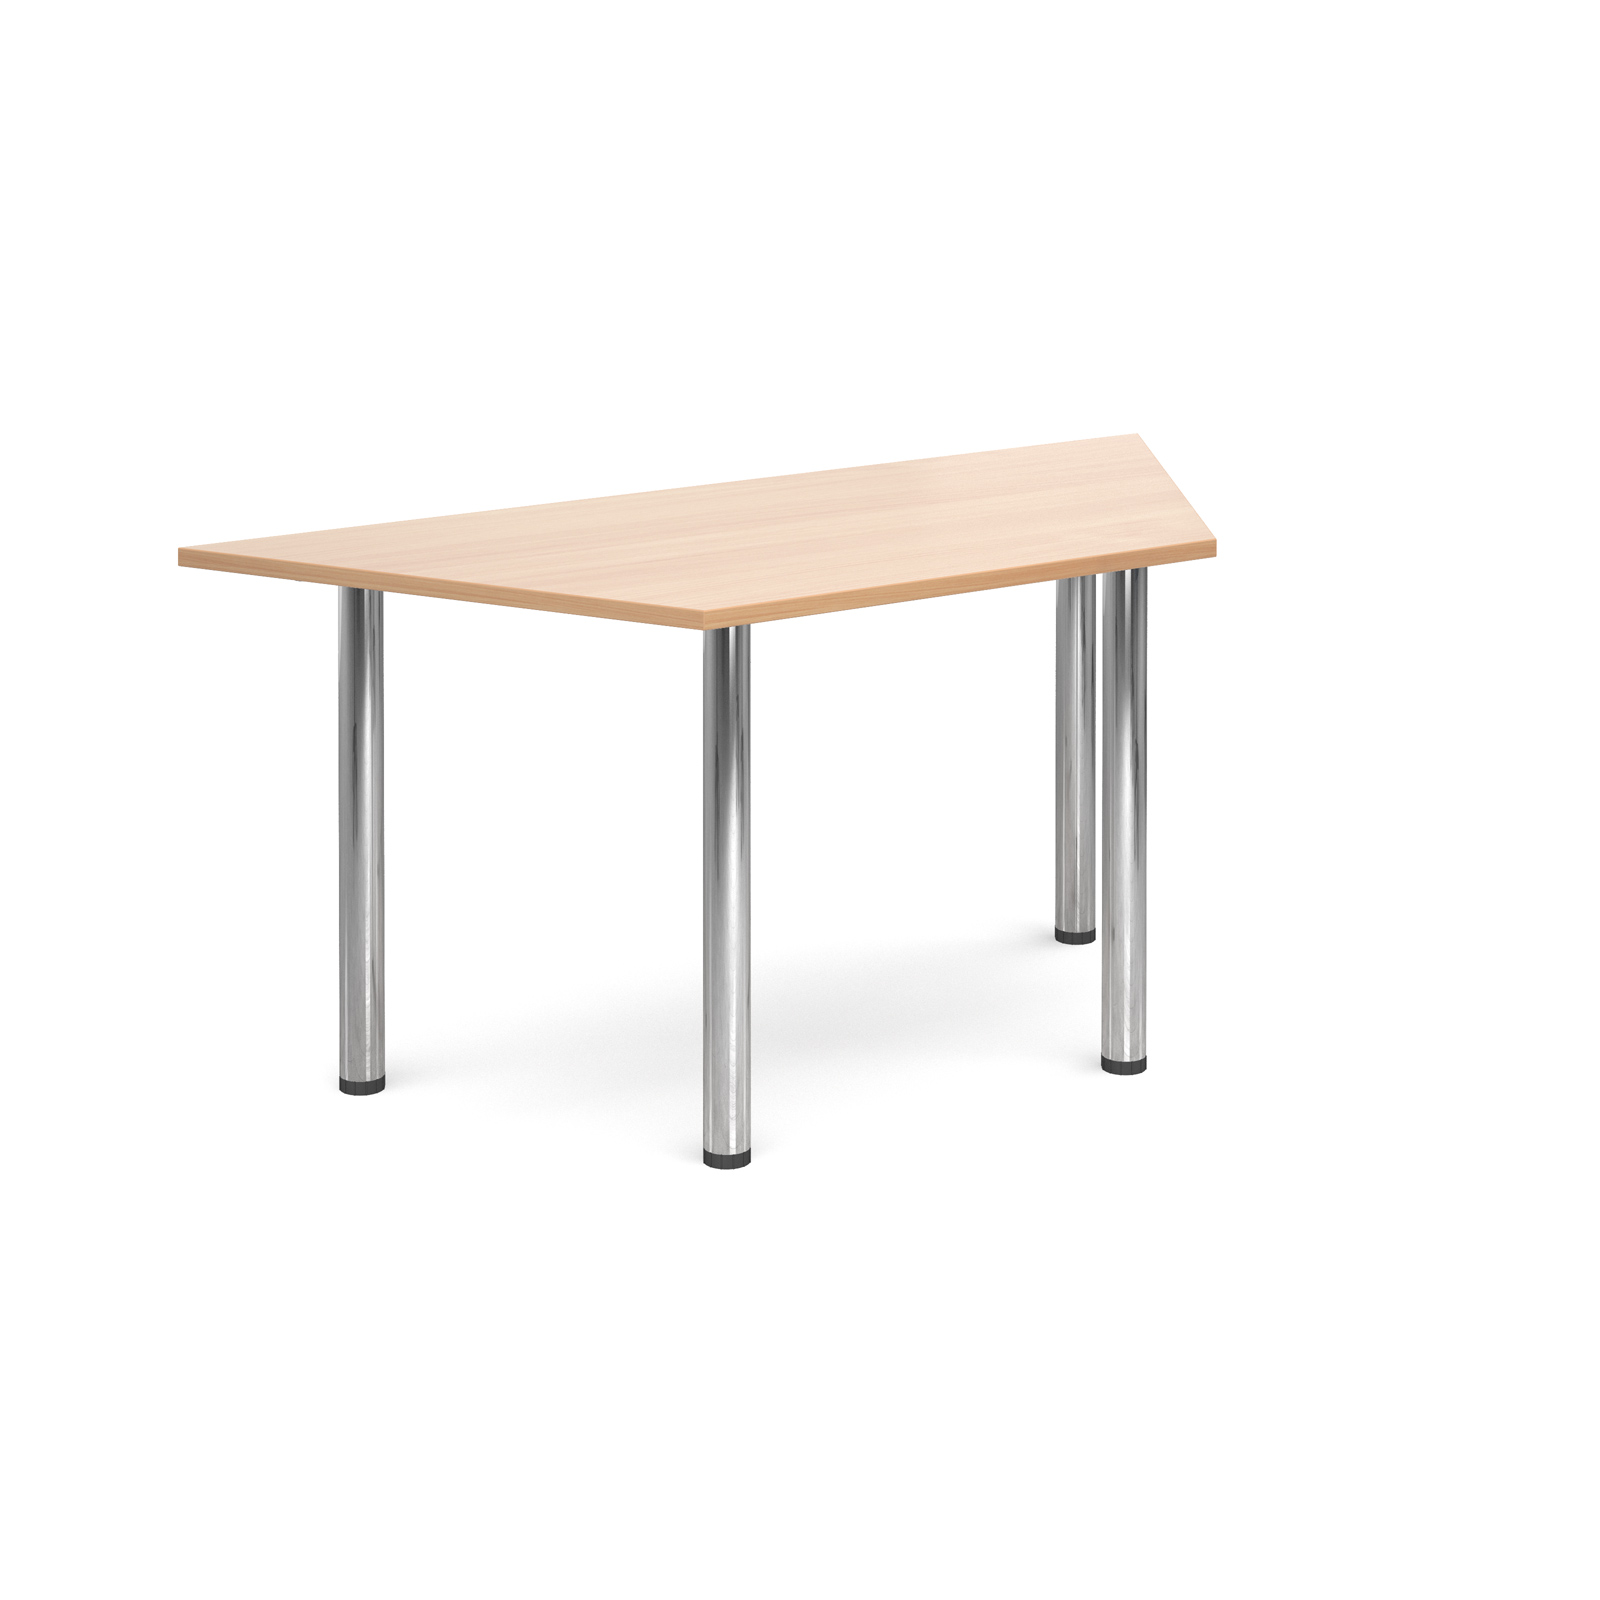 Trapezoidal deluxe chrome radial leg table 1600mm x 800mm - beech